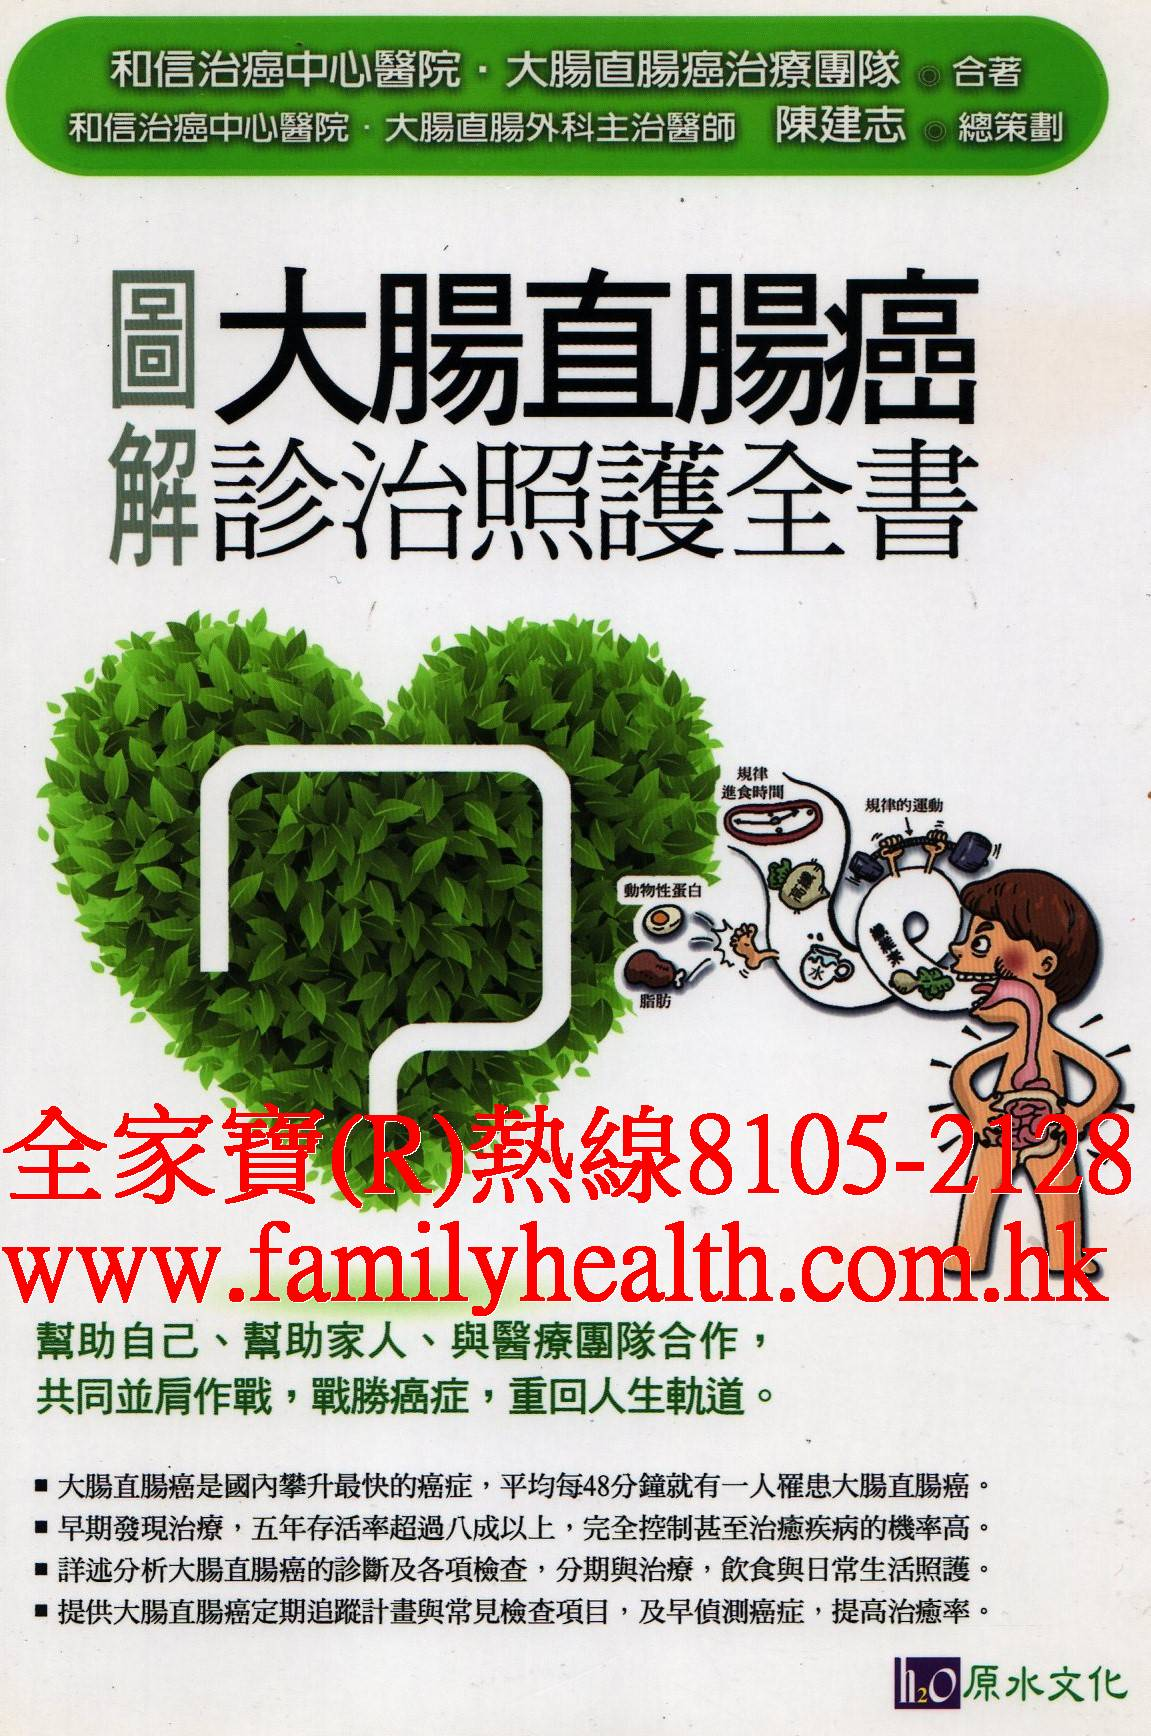 http://www.familyhealth.com.hk/files/full/1162_0.jpg